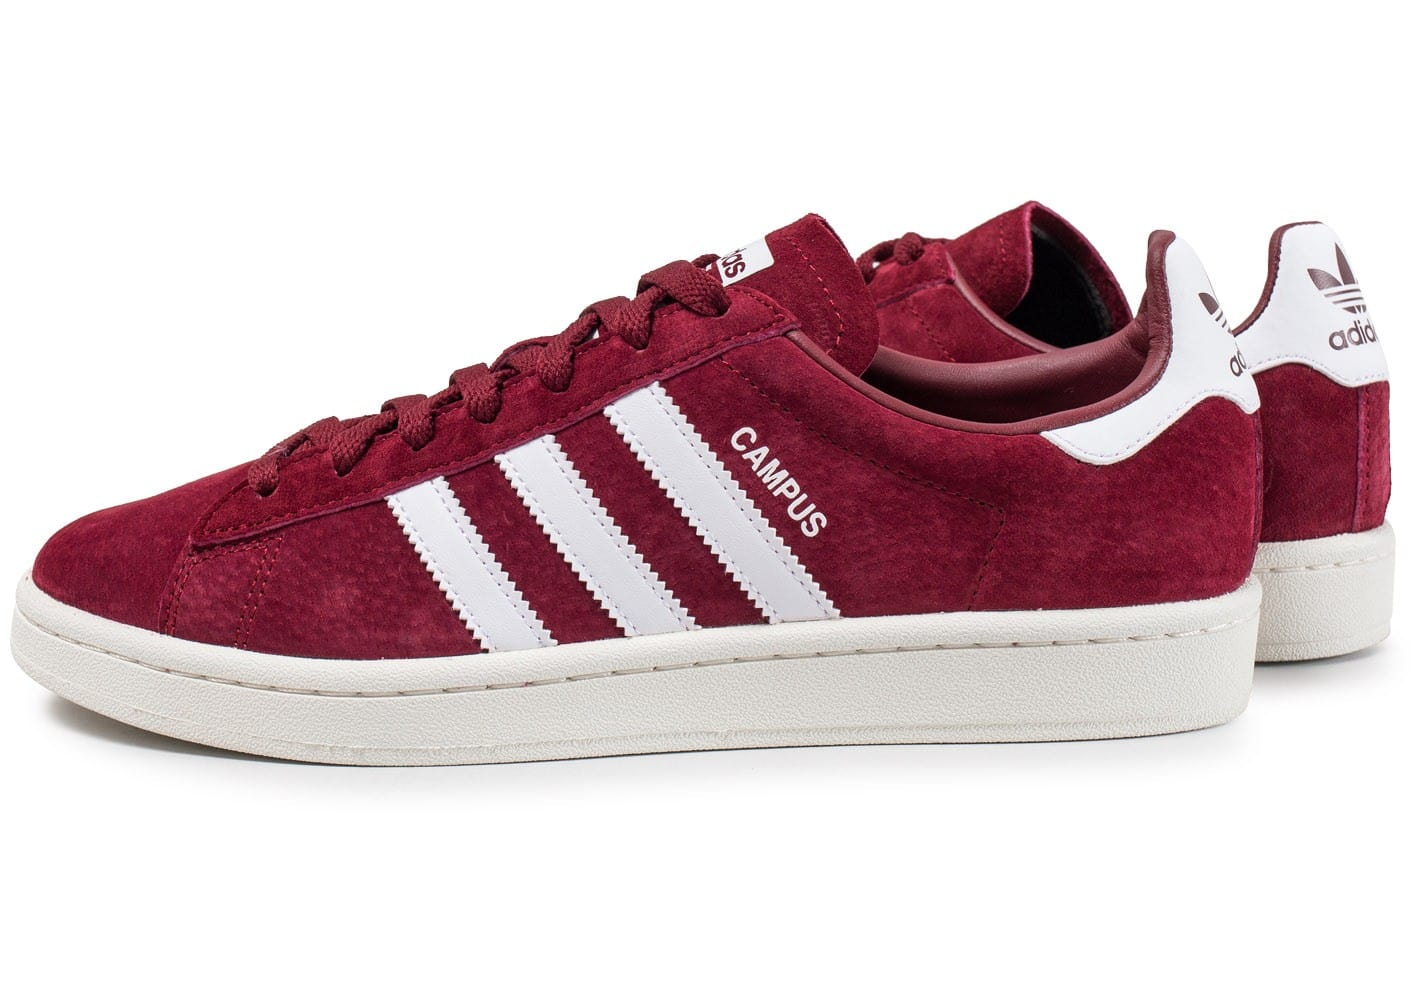 adidas campus bordeaux chaussures baskets homme chausport. Black Bedroom Furniture Sets. Home Design Ideas